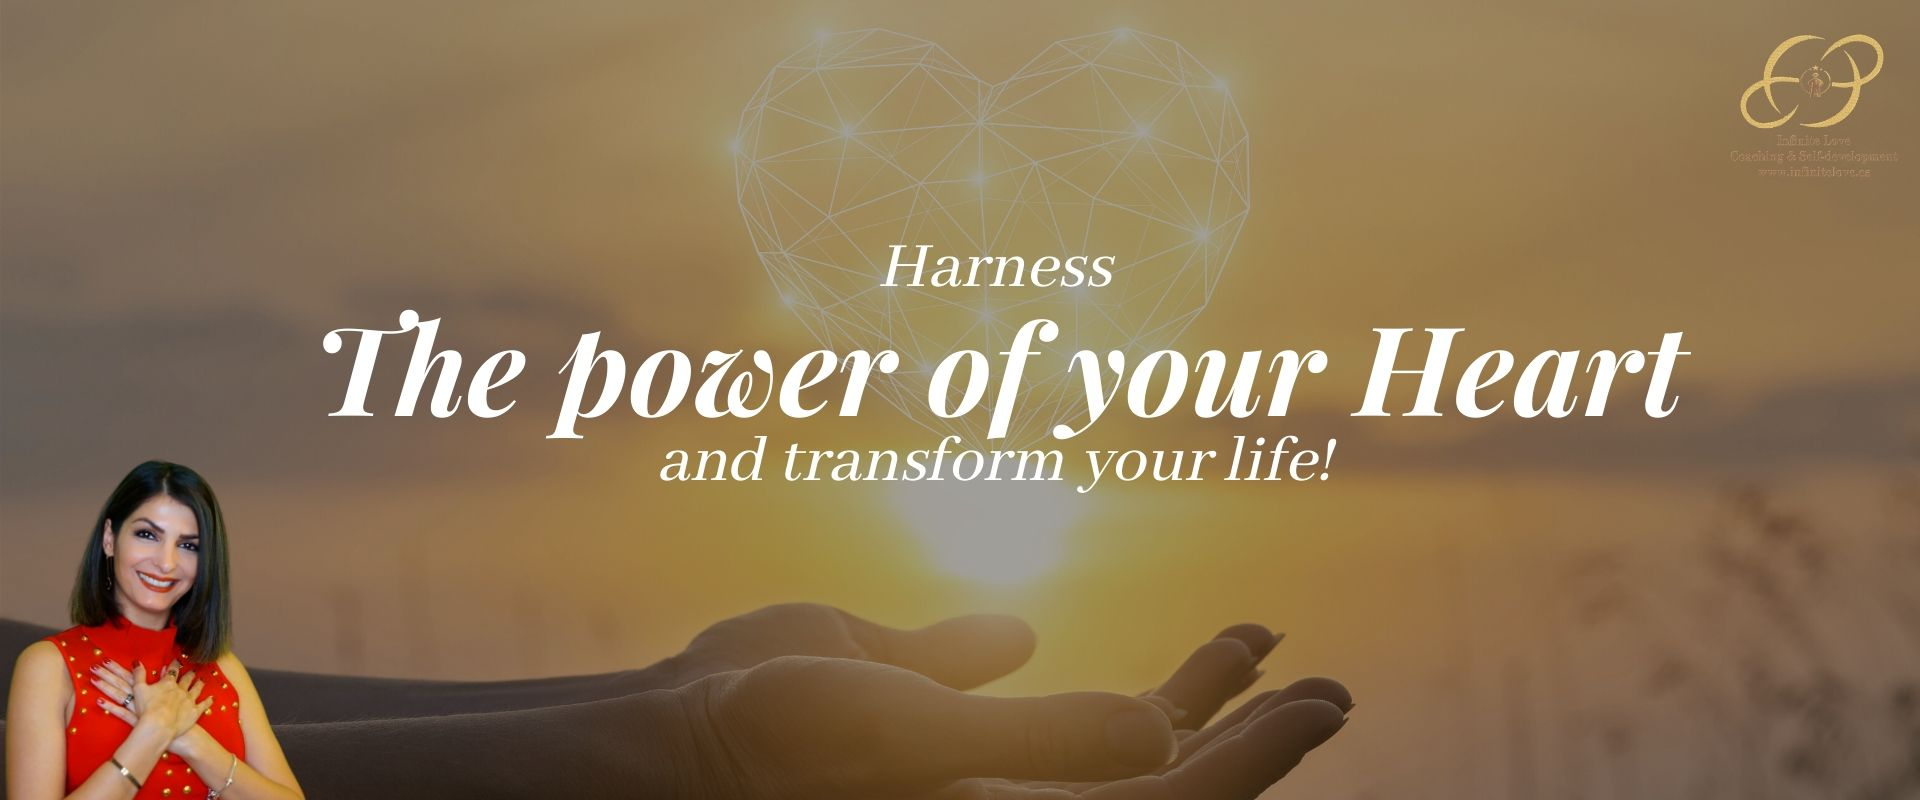 """Harness the """"Power of your Heart"""" & transform your life! by Shima Shad Rouh Heart intelligence facilitator Marbella Spain founder of coaching academy infinite love"""